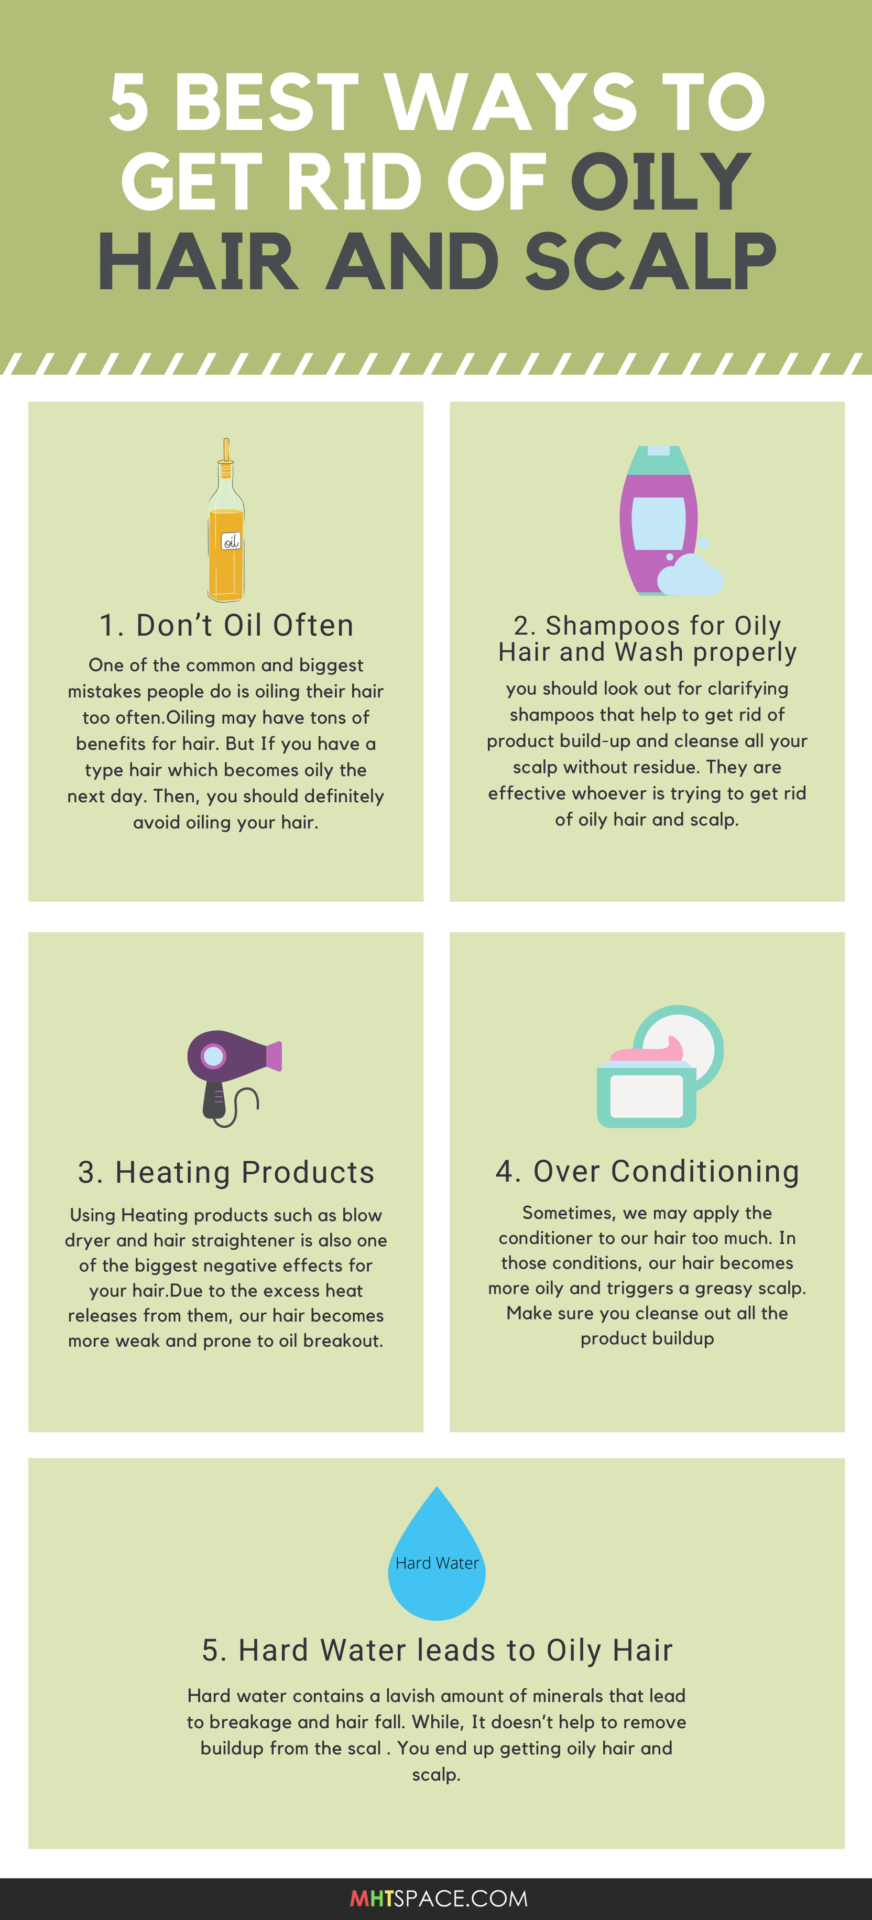 5 Best Ways to Get Rid of Oily Hair and Scalp pin